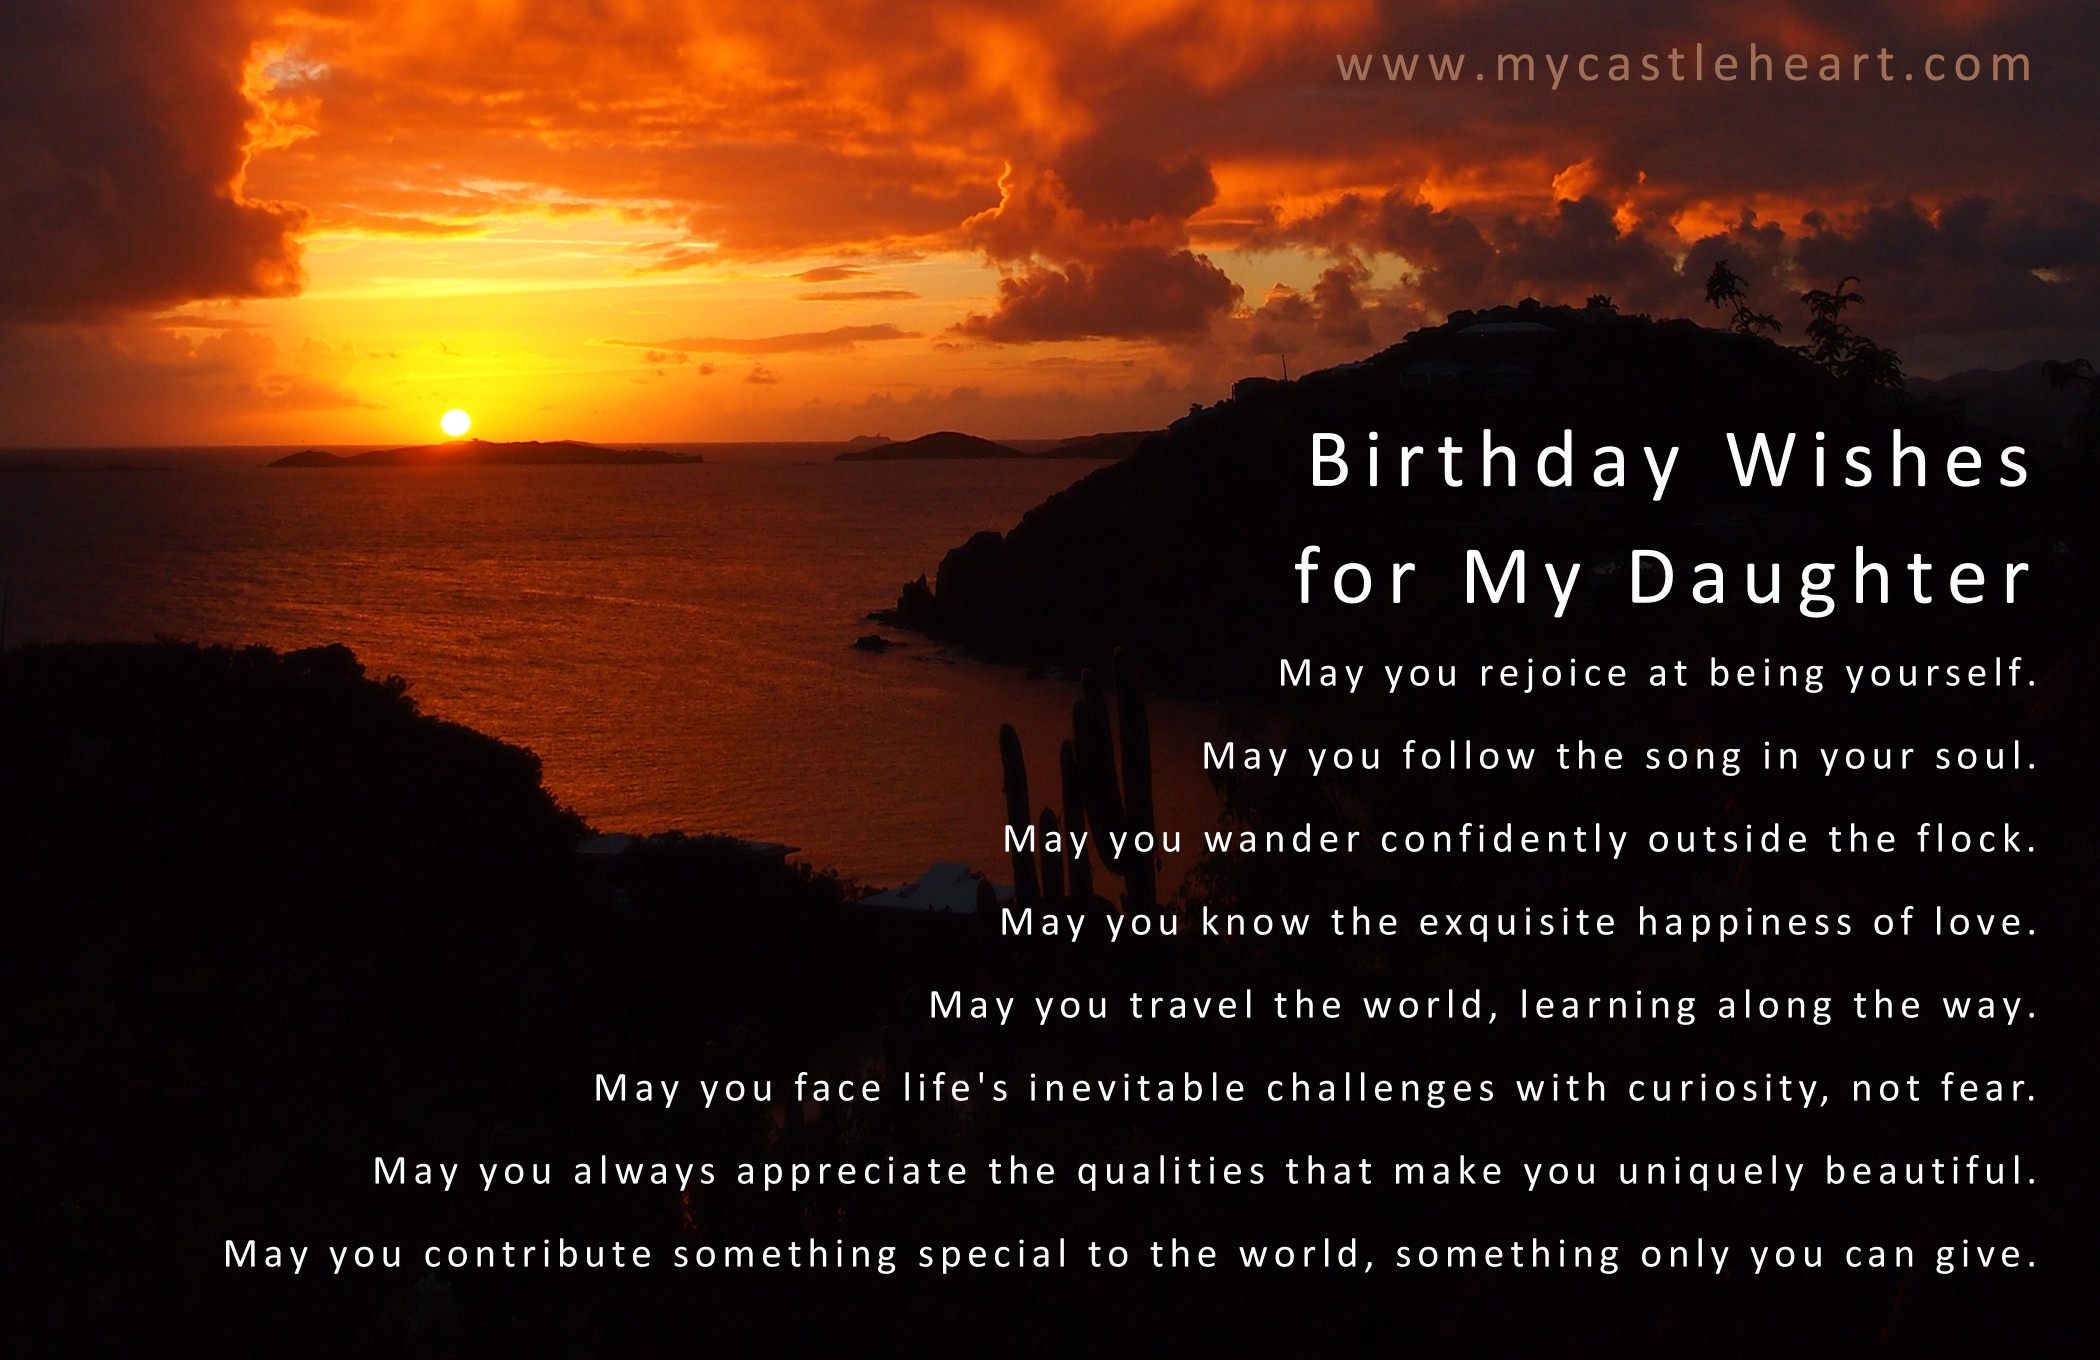 Best ideas about Birthday Wishes For A Daughter . Save or Pin Birthday Wishes for My Daughter Now.